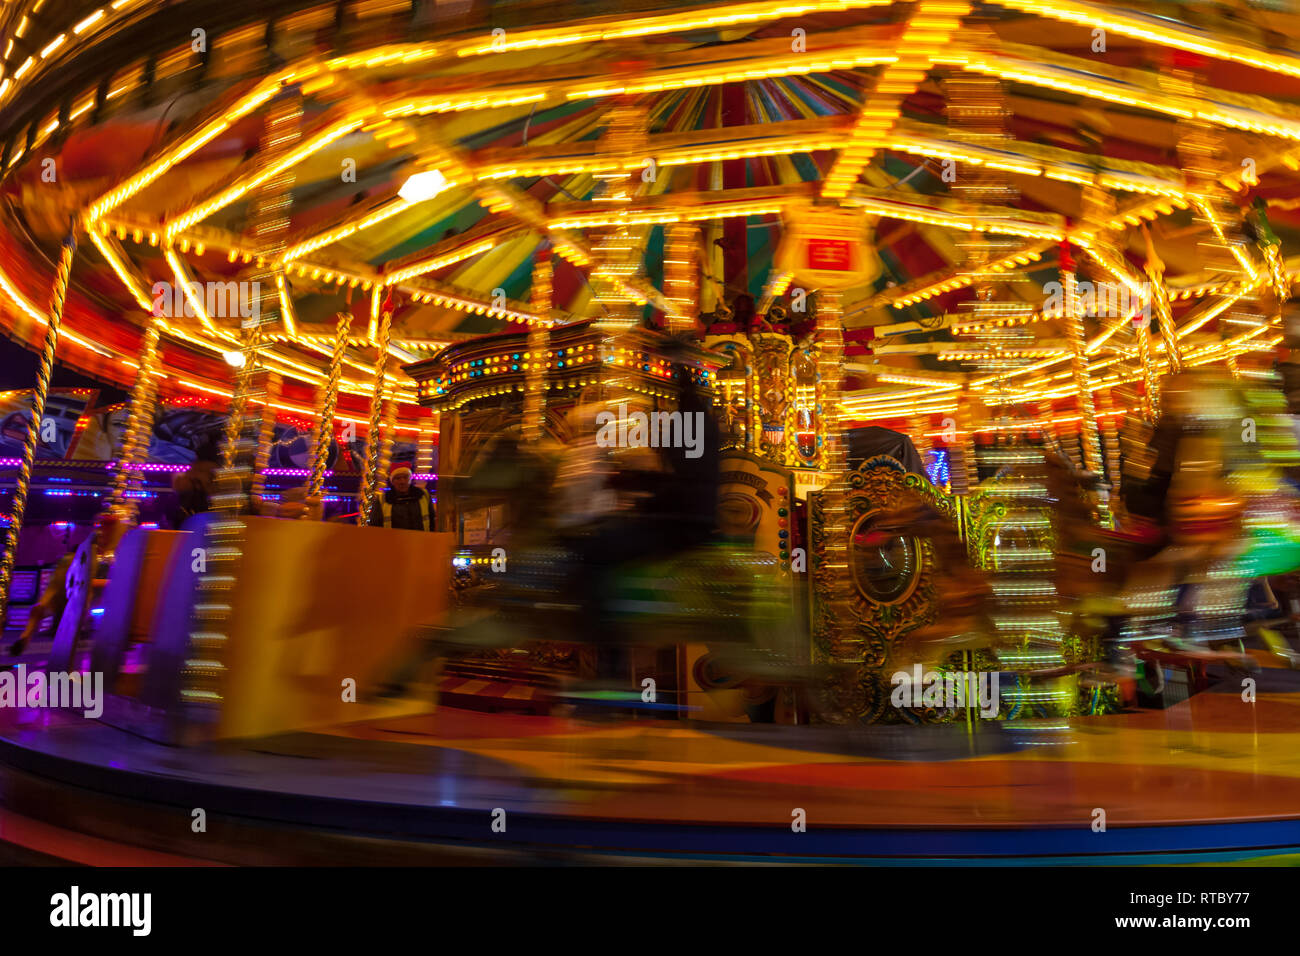 Lincoln Fair Merry-go-round at the Christmas market Stock Photo